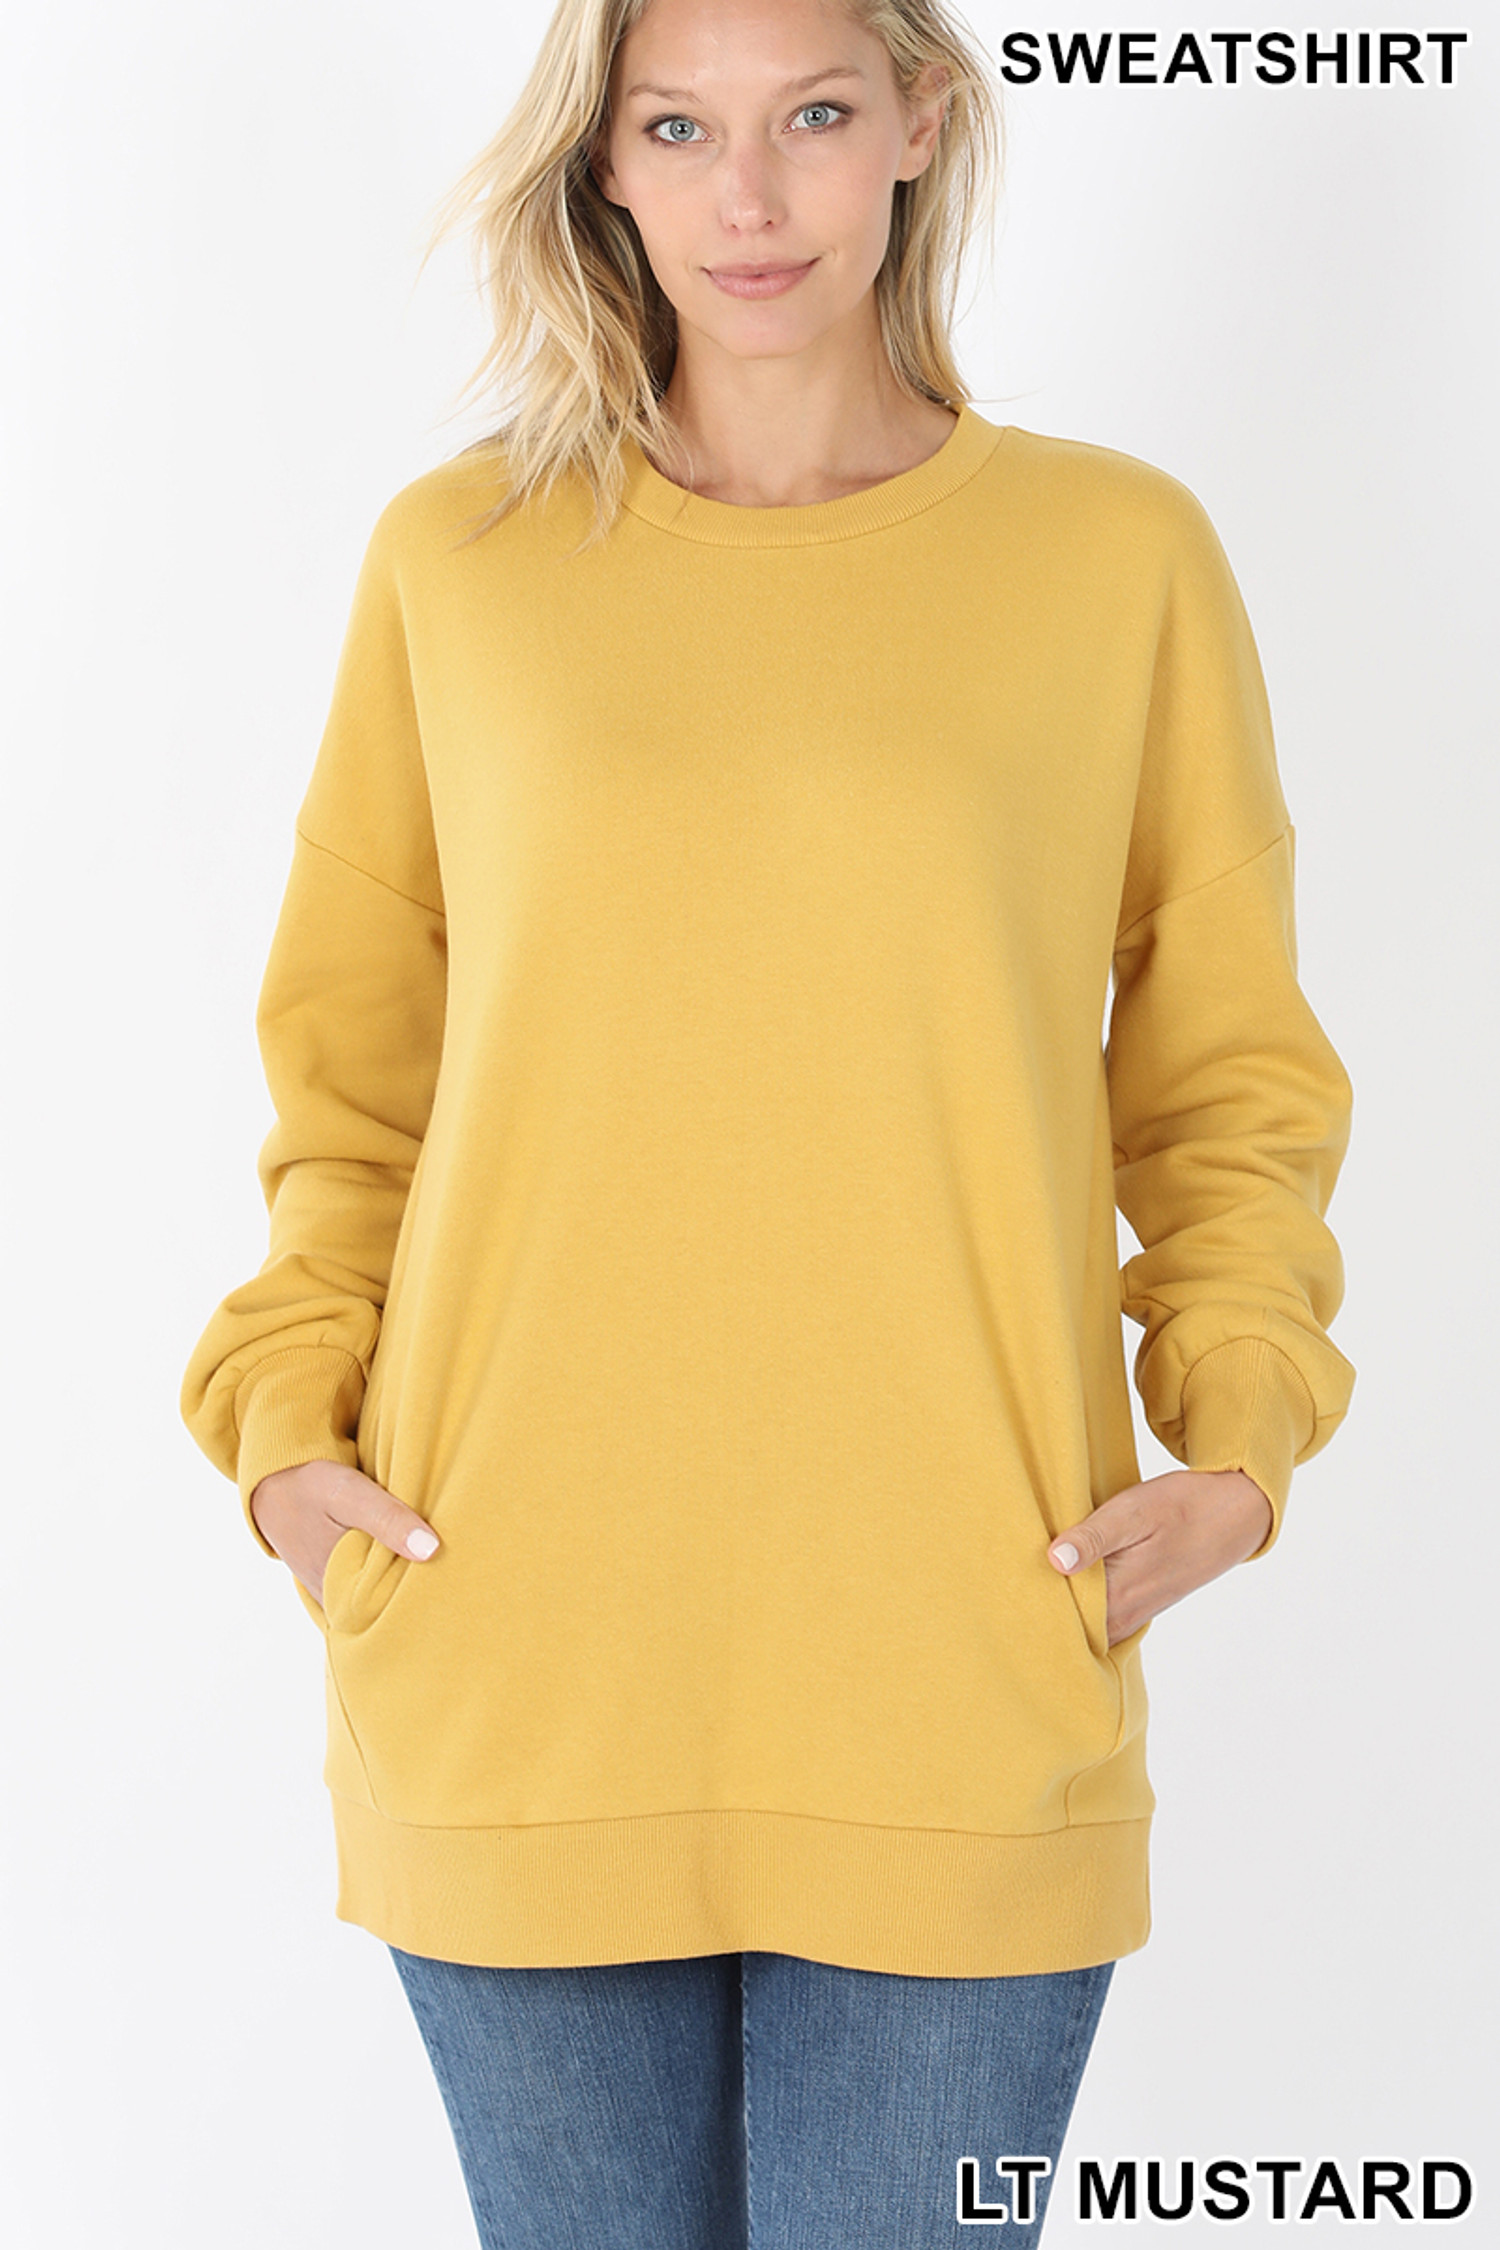 Front image of Light Mustard Round Crew Neck Sweatshirt with Side Pockets